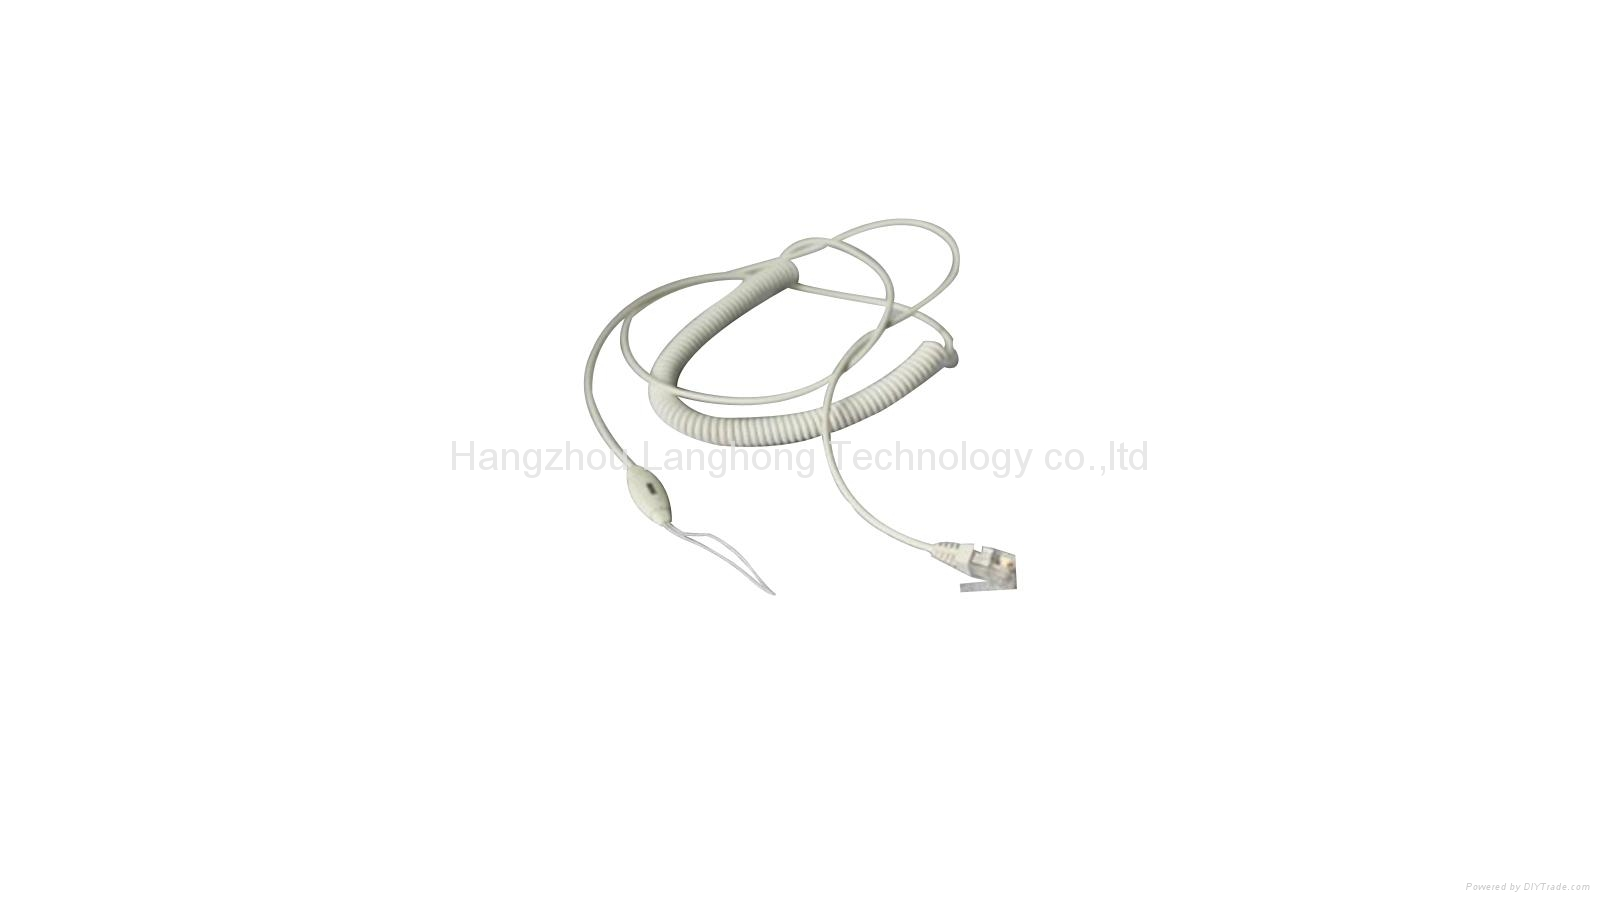 Showhi Alarm Only Security Display Loop Senor For Earphone China Wire Product Image